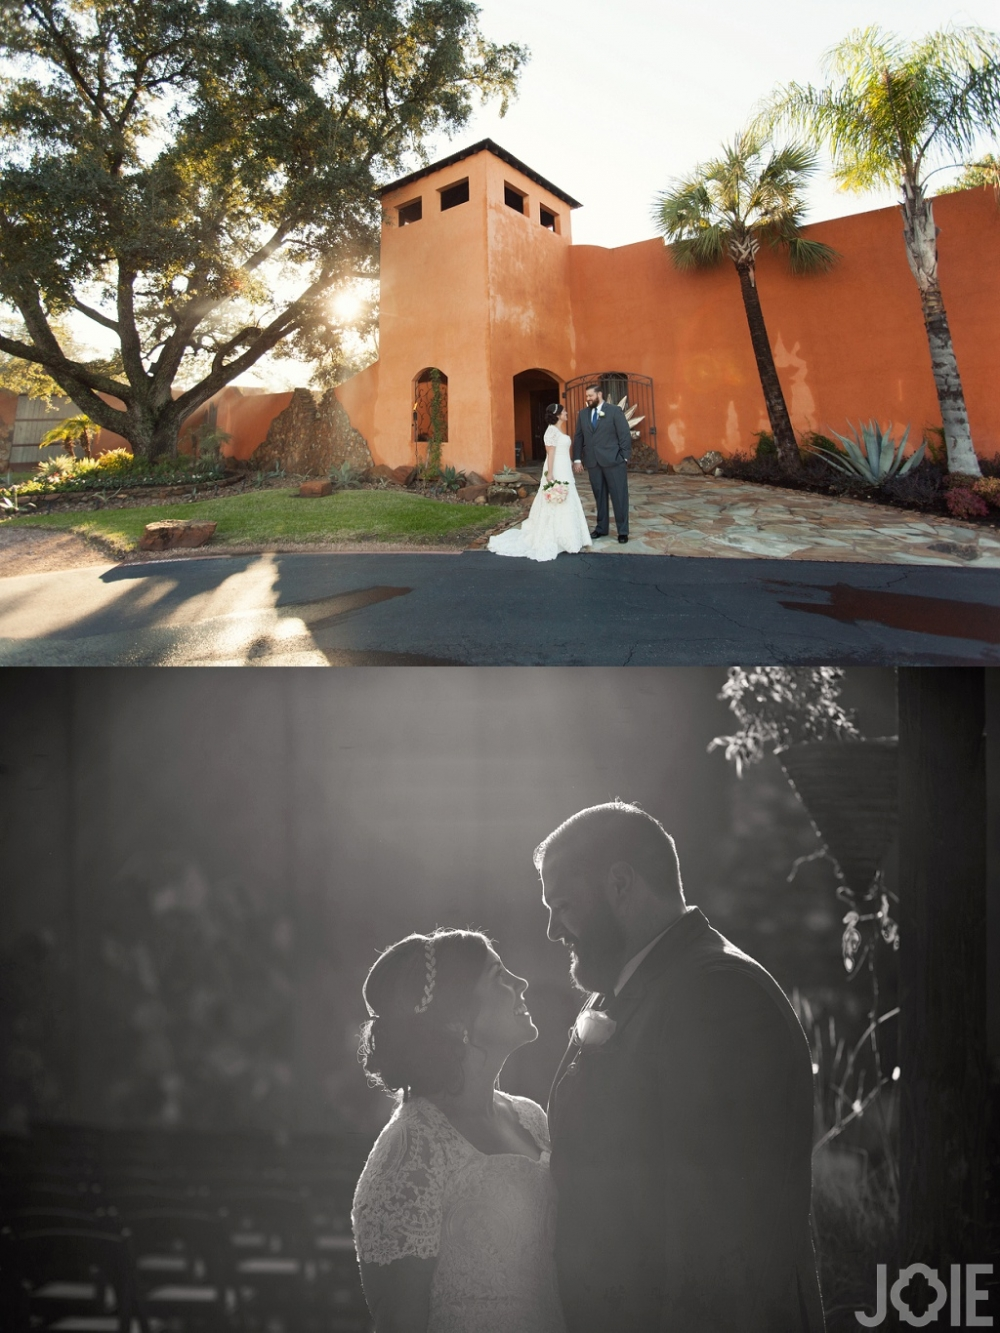 Outdoor wedding portraits at Agave Real by Joie Photographie